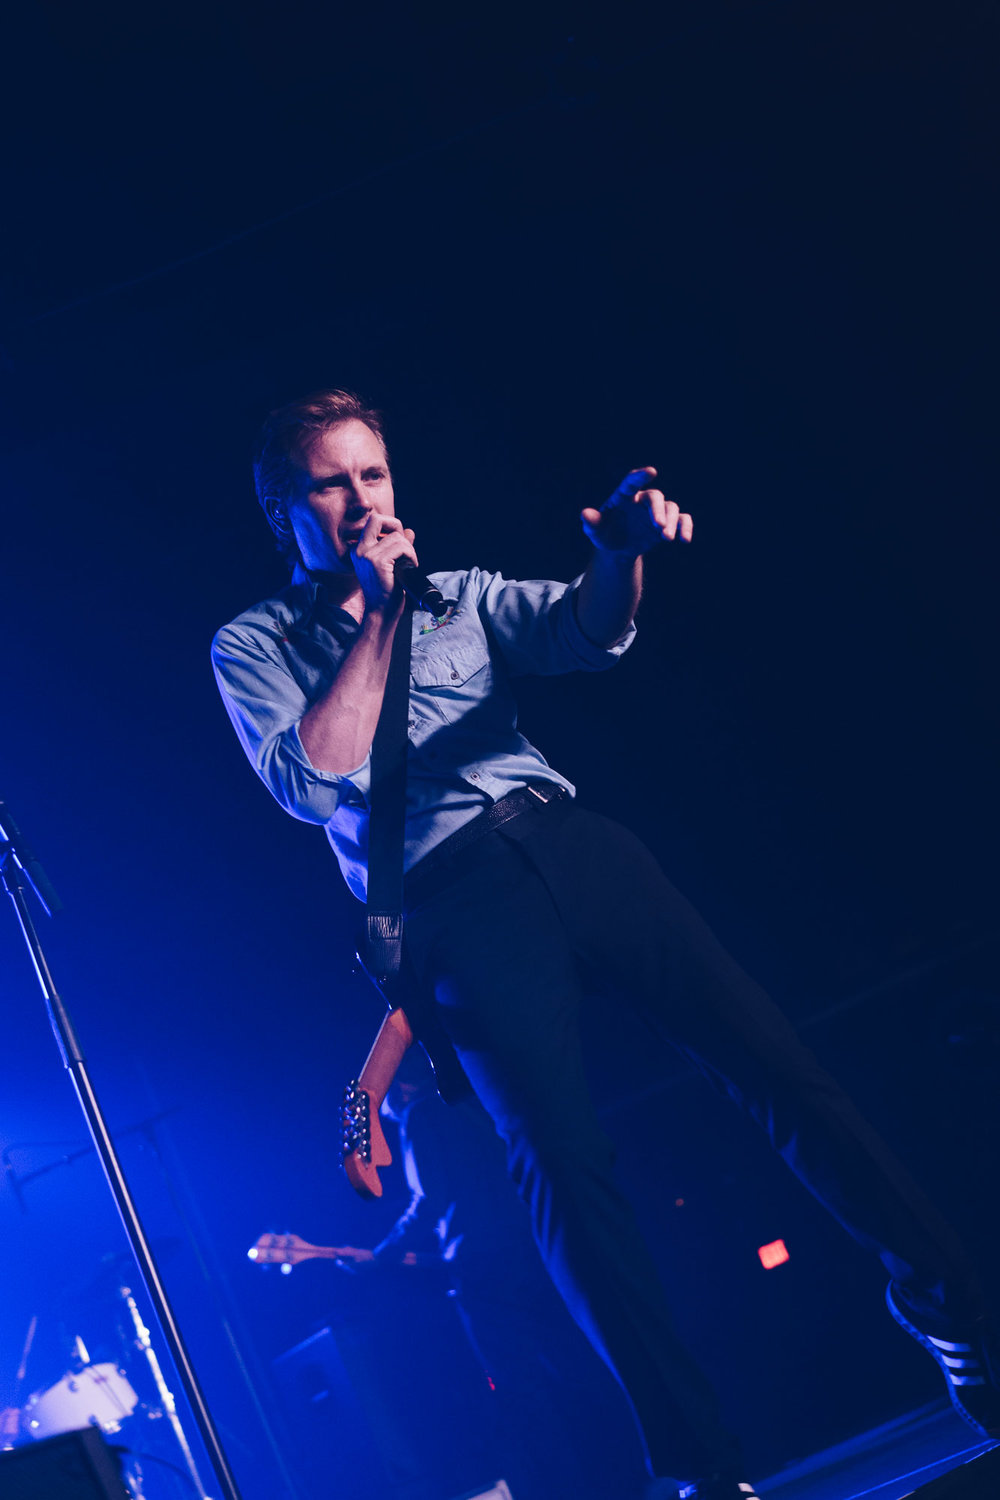 FranzFerdinand - Britton Strickland (9 of 15).jpg